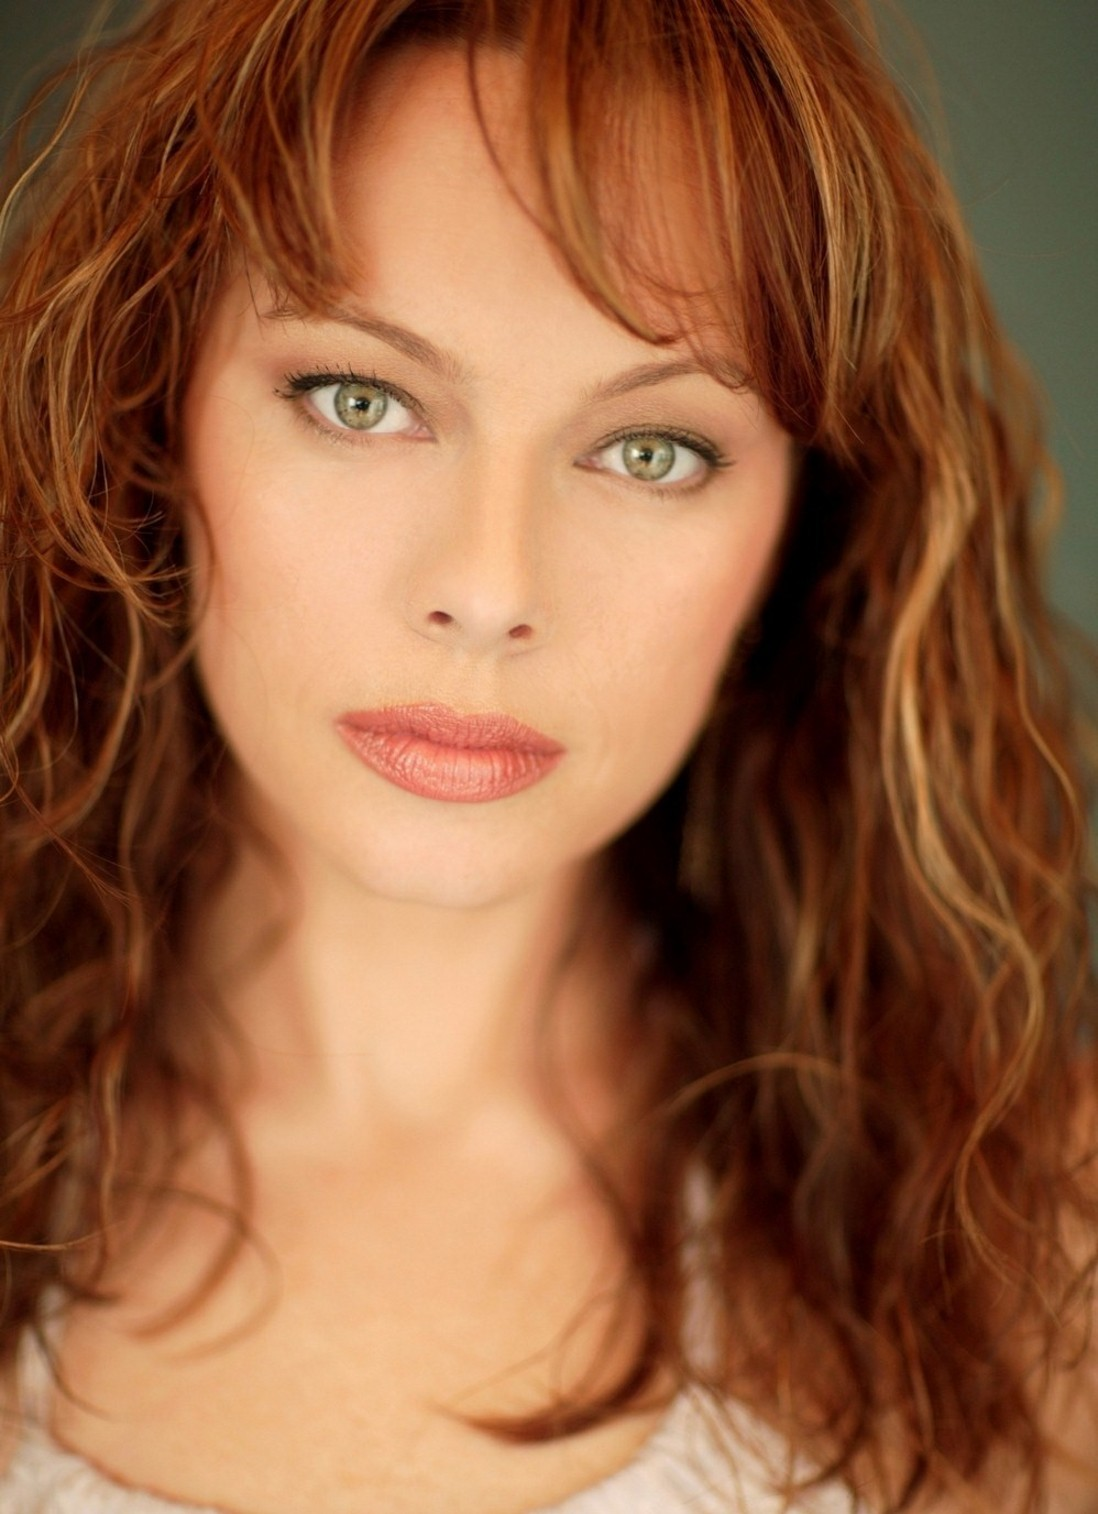 melinda clarke twittermelinda clarke fight, melinda clarke 2015, melinda clarke fan site, melinda clarke net worth, melinda clarke instagram, melinda clarke soldier of fortune, melinda clarke twitter, melinda clarke facebook, melinda clarke daughter, melinda clarke, melinda clarke imdb, melinda clarke gotham, melinda clarke vampire diaries, melinda clarke wiki, melinda clarke 2014, melinda clarke young, melinda clarke csi, melinda clarke nikita, melinda clarke the oc, melinda clarke 2016